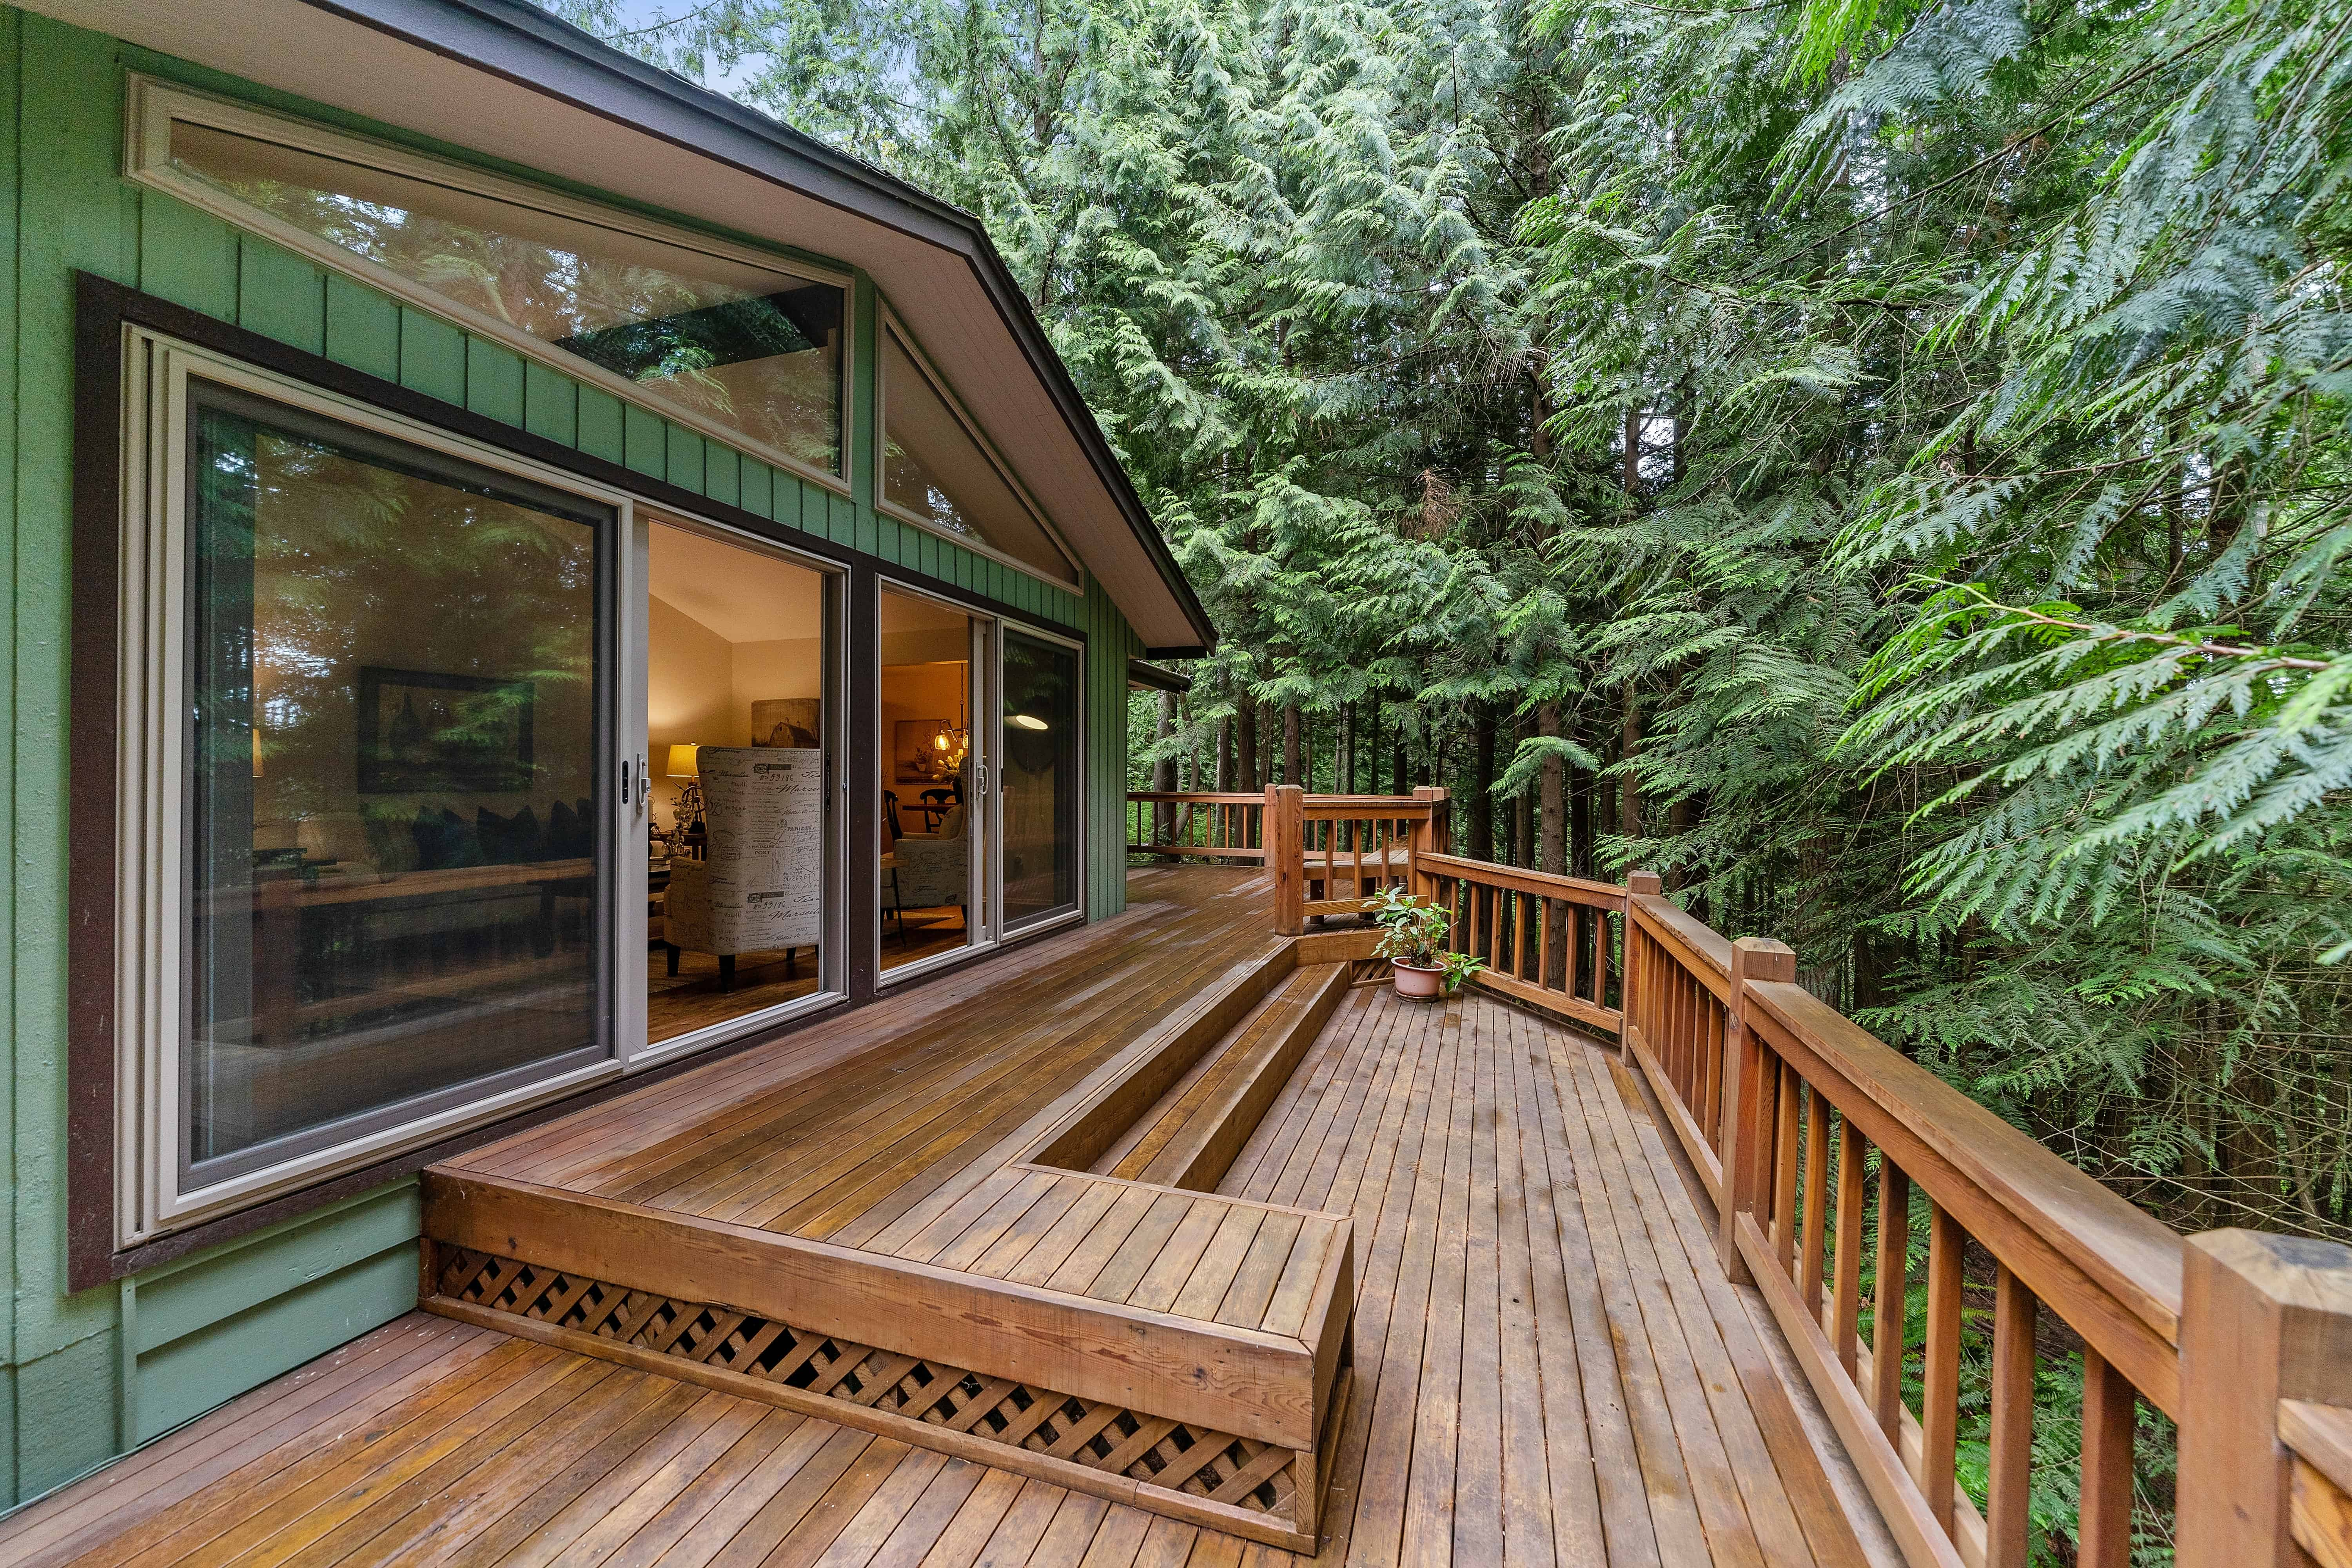 brown stained deck surrounded by green trees attached to a home with large windows